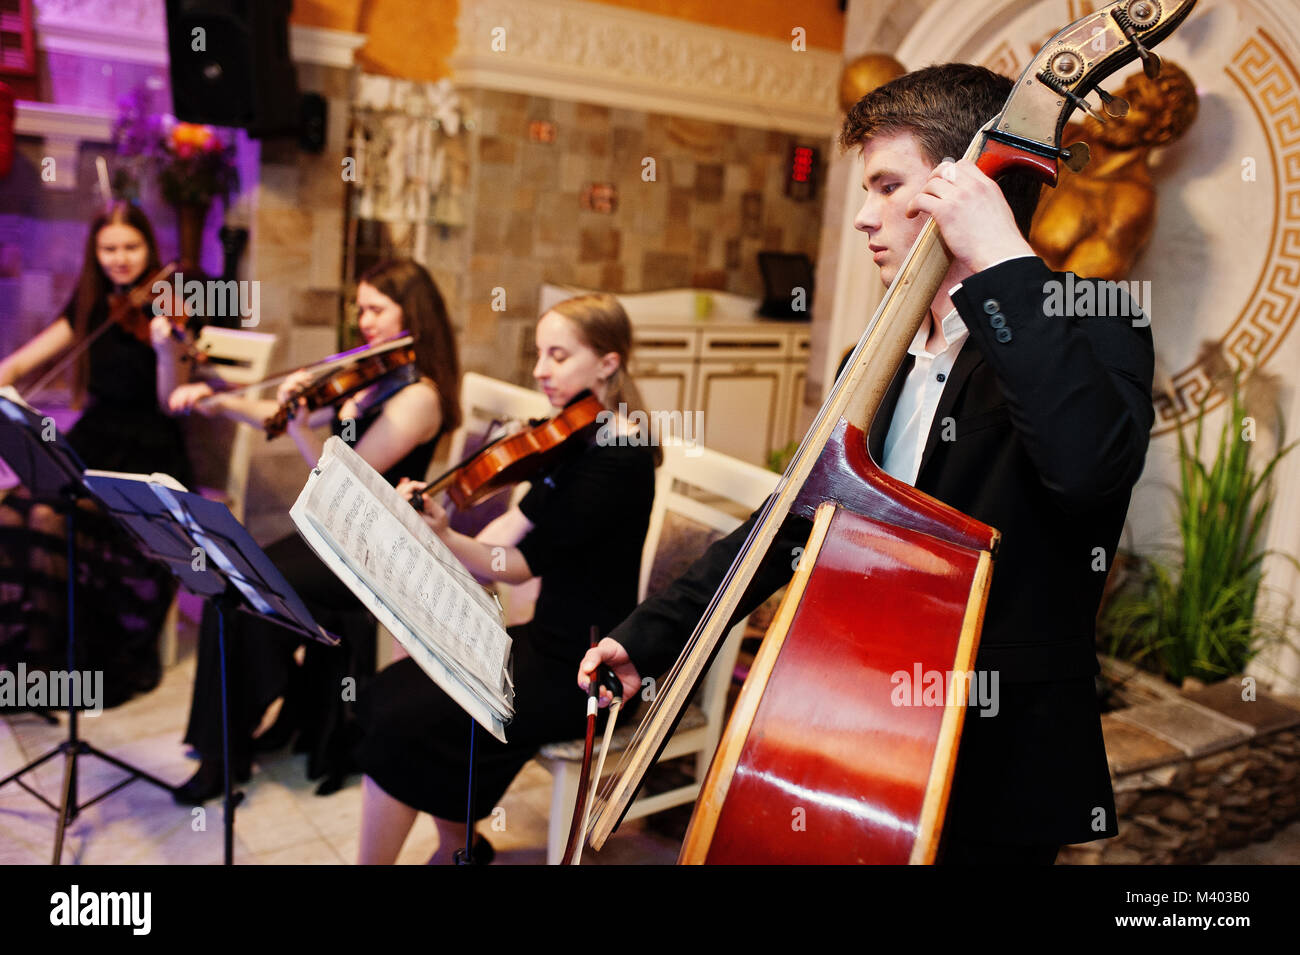 String quartet playing instruments in the restaurant on the wedding party. - Stock Image